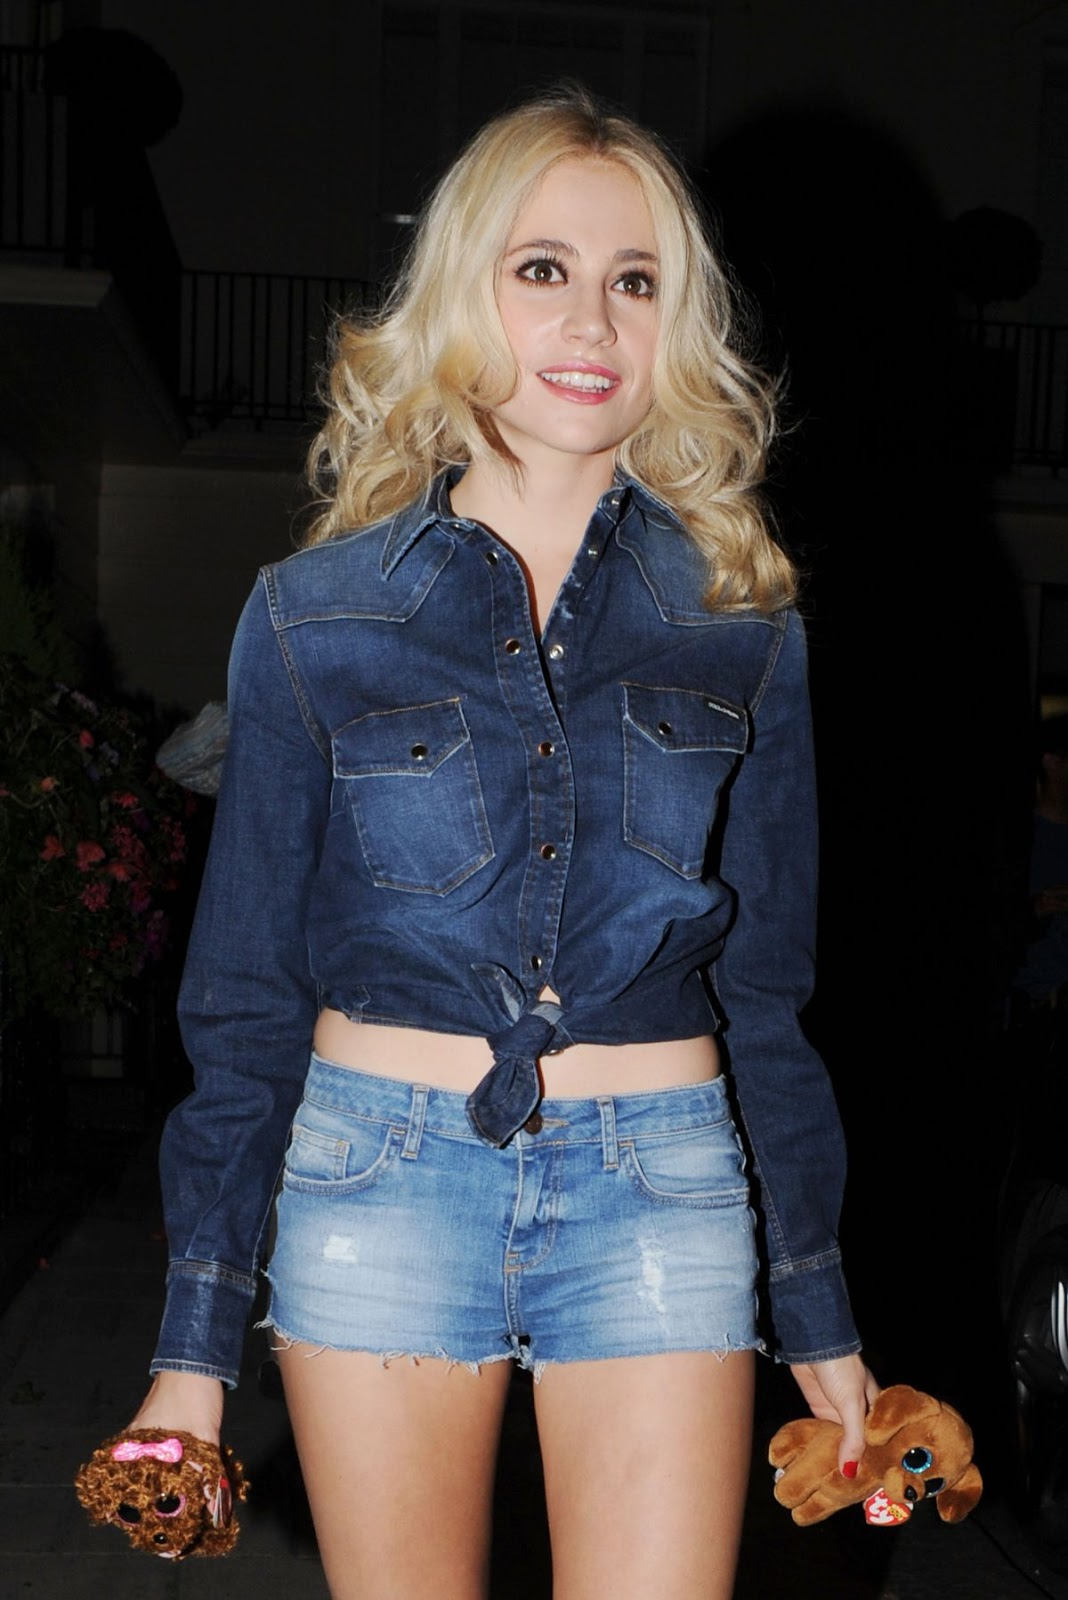 HD Photos of Pixie Lott Lraves Theatre Royal Haymarket, London